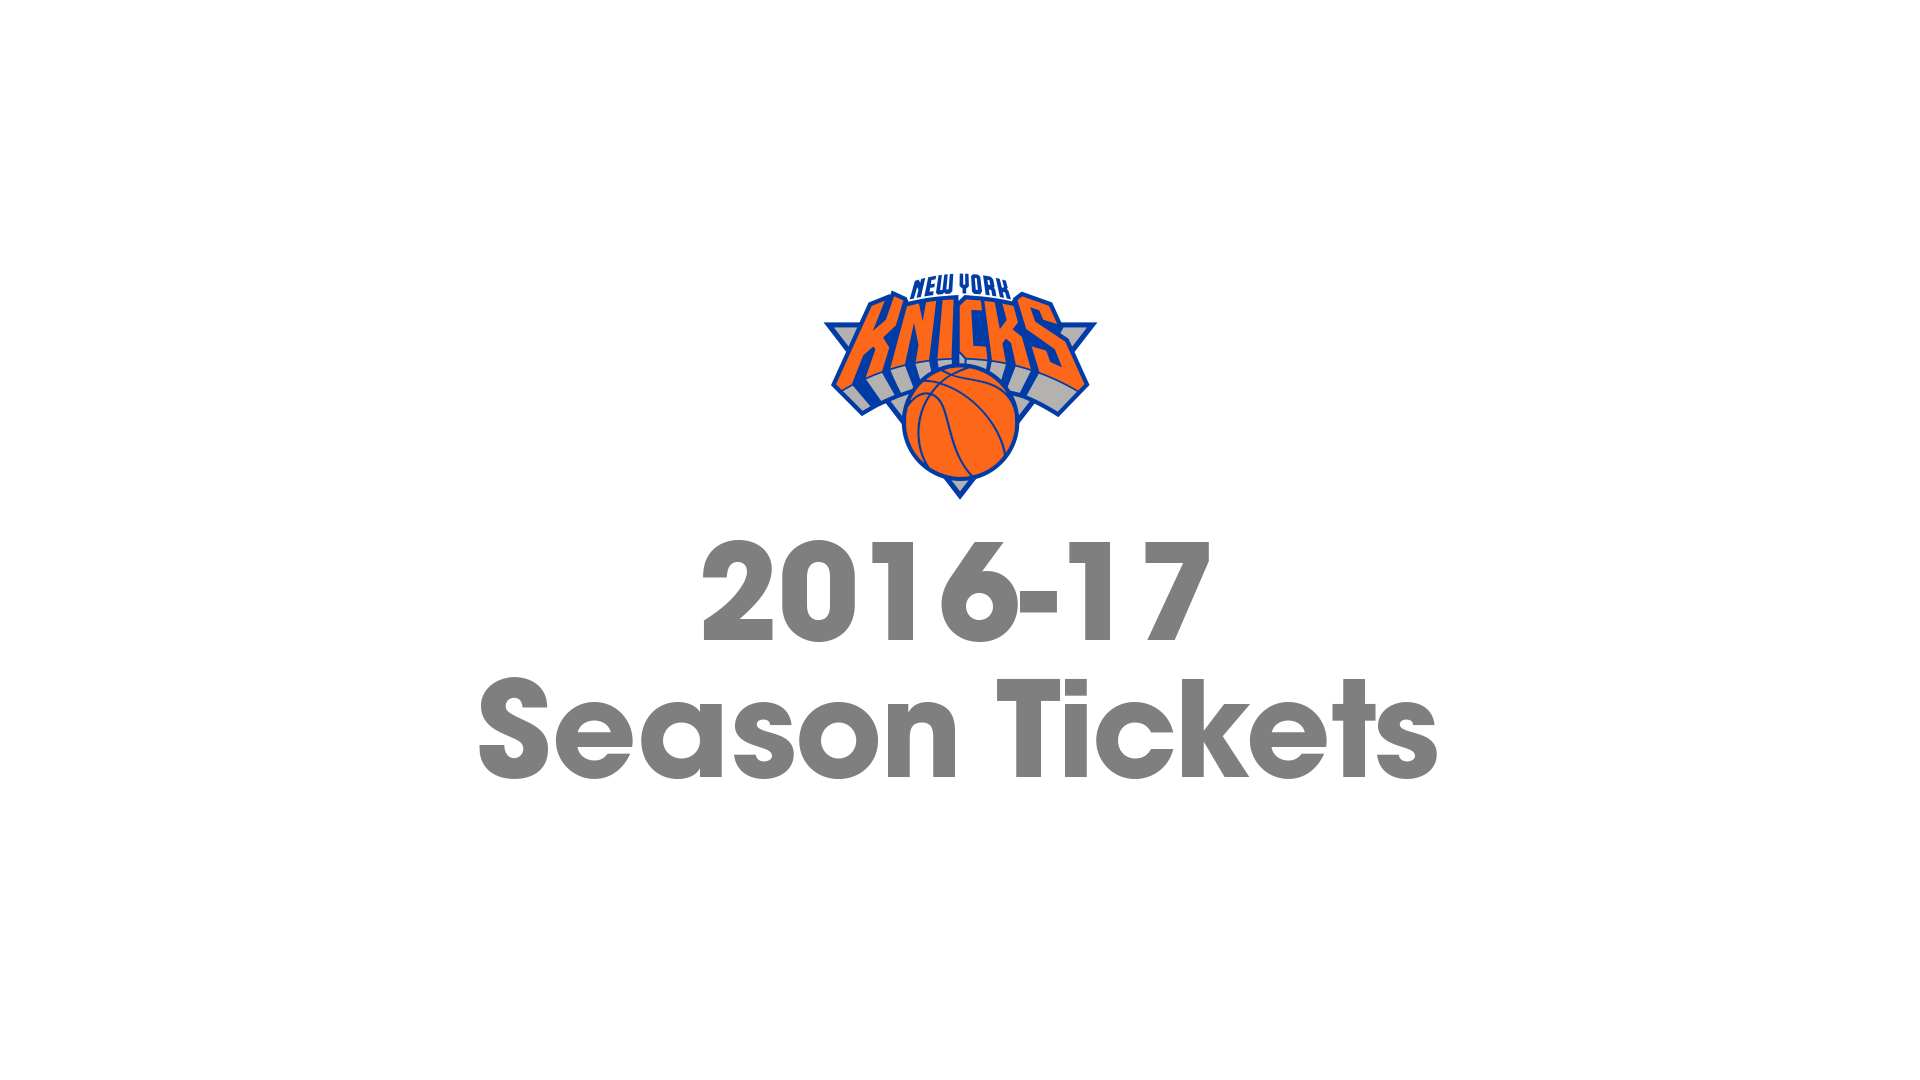 New York Knicks 2016-17 Season Tickets